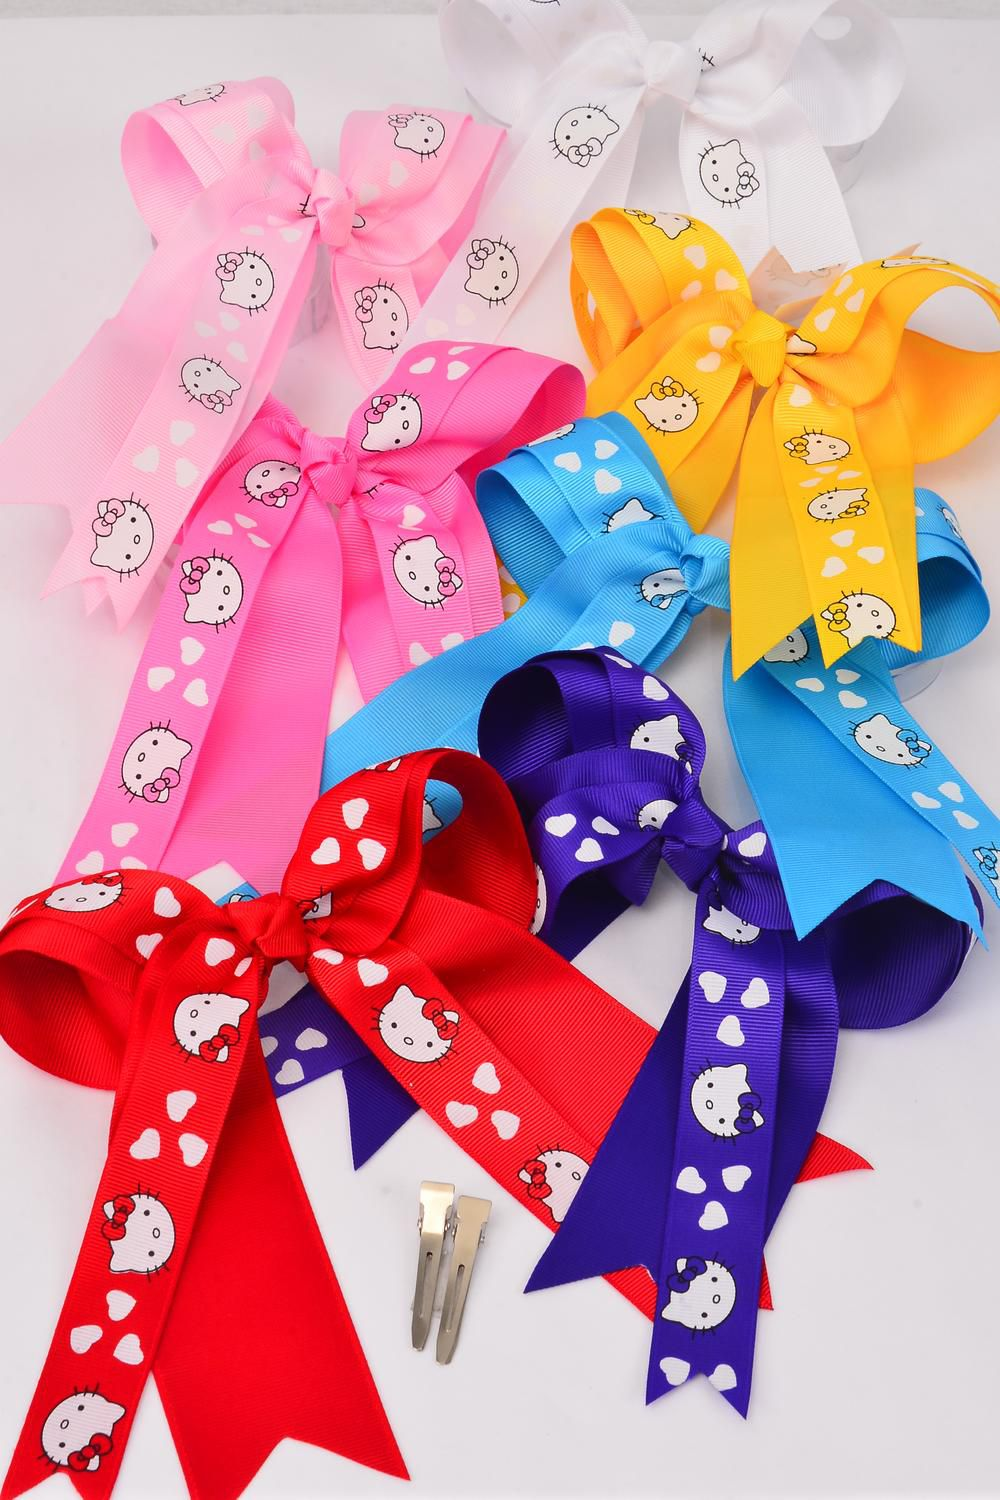 "Hair Bow Long Tail Kitty Cat Print Double Layer Alligator Clip Grosgrain Bowtie/DZ **Alligator Clip** Bow-6.5""x 6"" Wide,2 Pink,2 Blue,2 Purple,2 Hot Pink,2 Red,1 Yellow,1 White,7 Color Mix,Clear Strip & UPC Code"